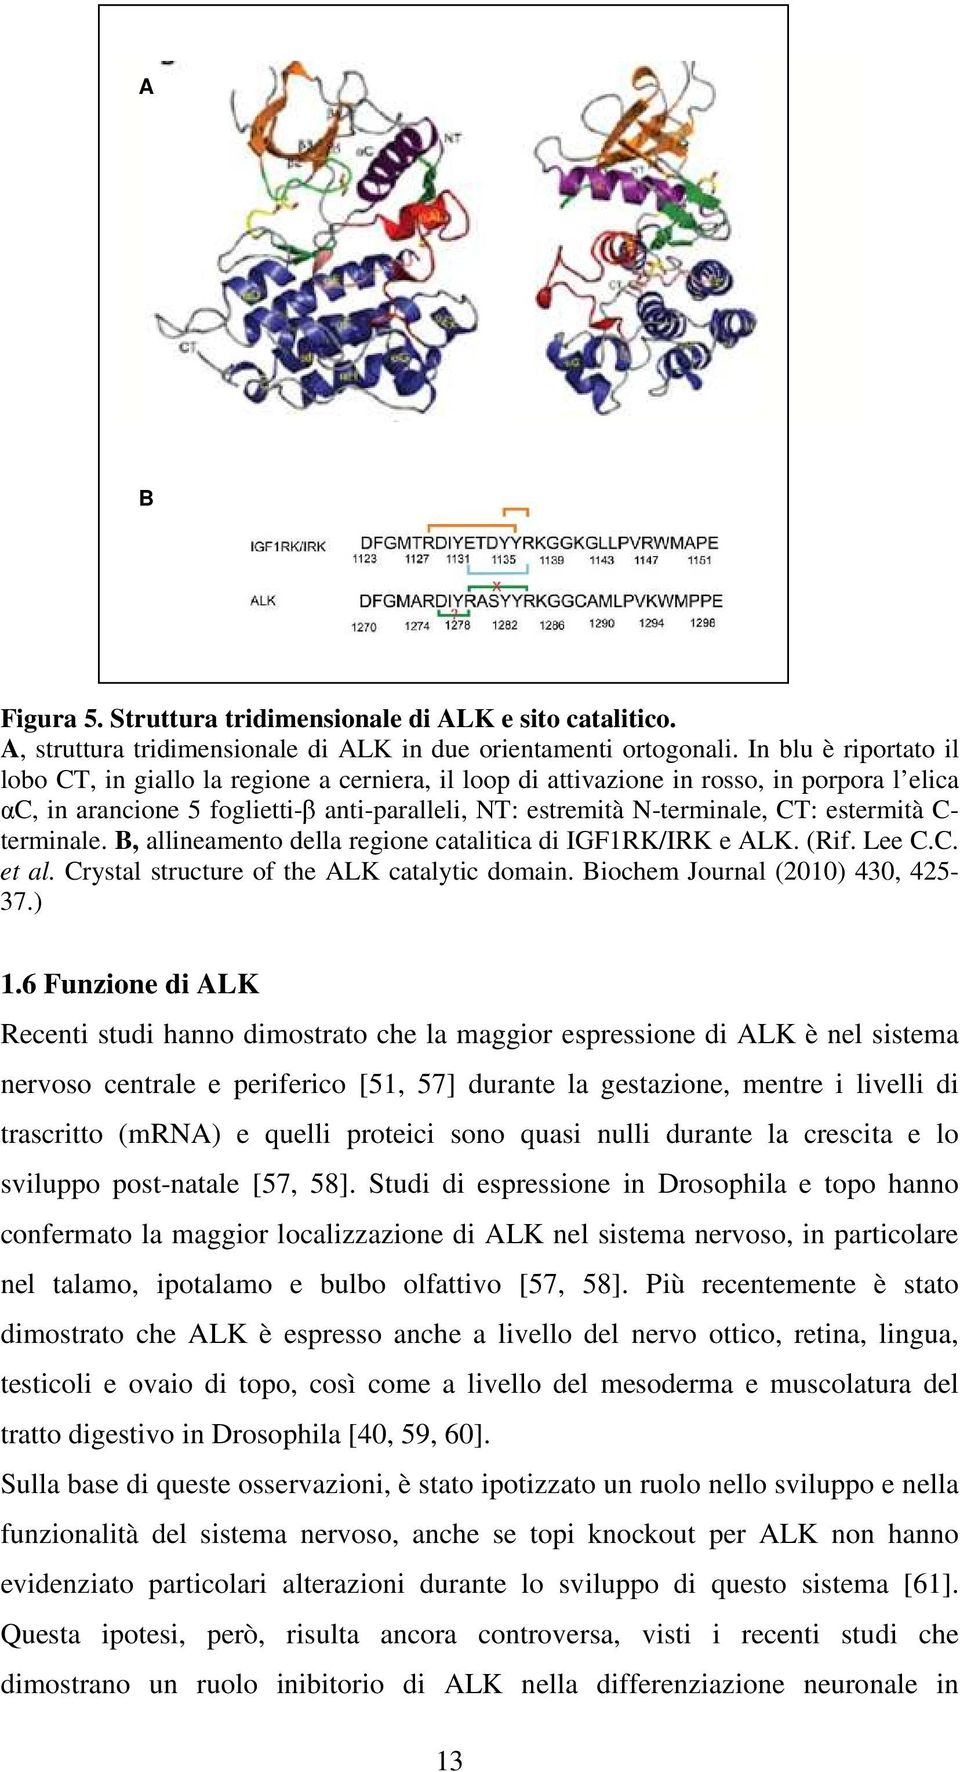 estermità C- terminale. B, allineamento della regione catalitica di IGF1RK/IRK e ALK. (Rif. Lee C.C. et al. Crystal structure of the ALK catalytic domain. Biochem Journal (2010) 430, 425-37.) 1.